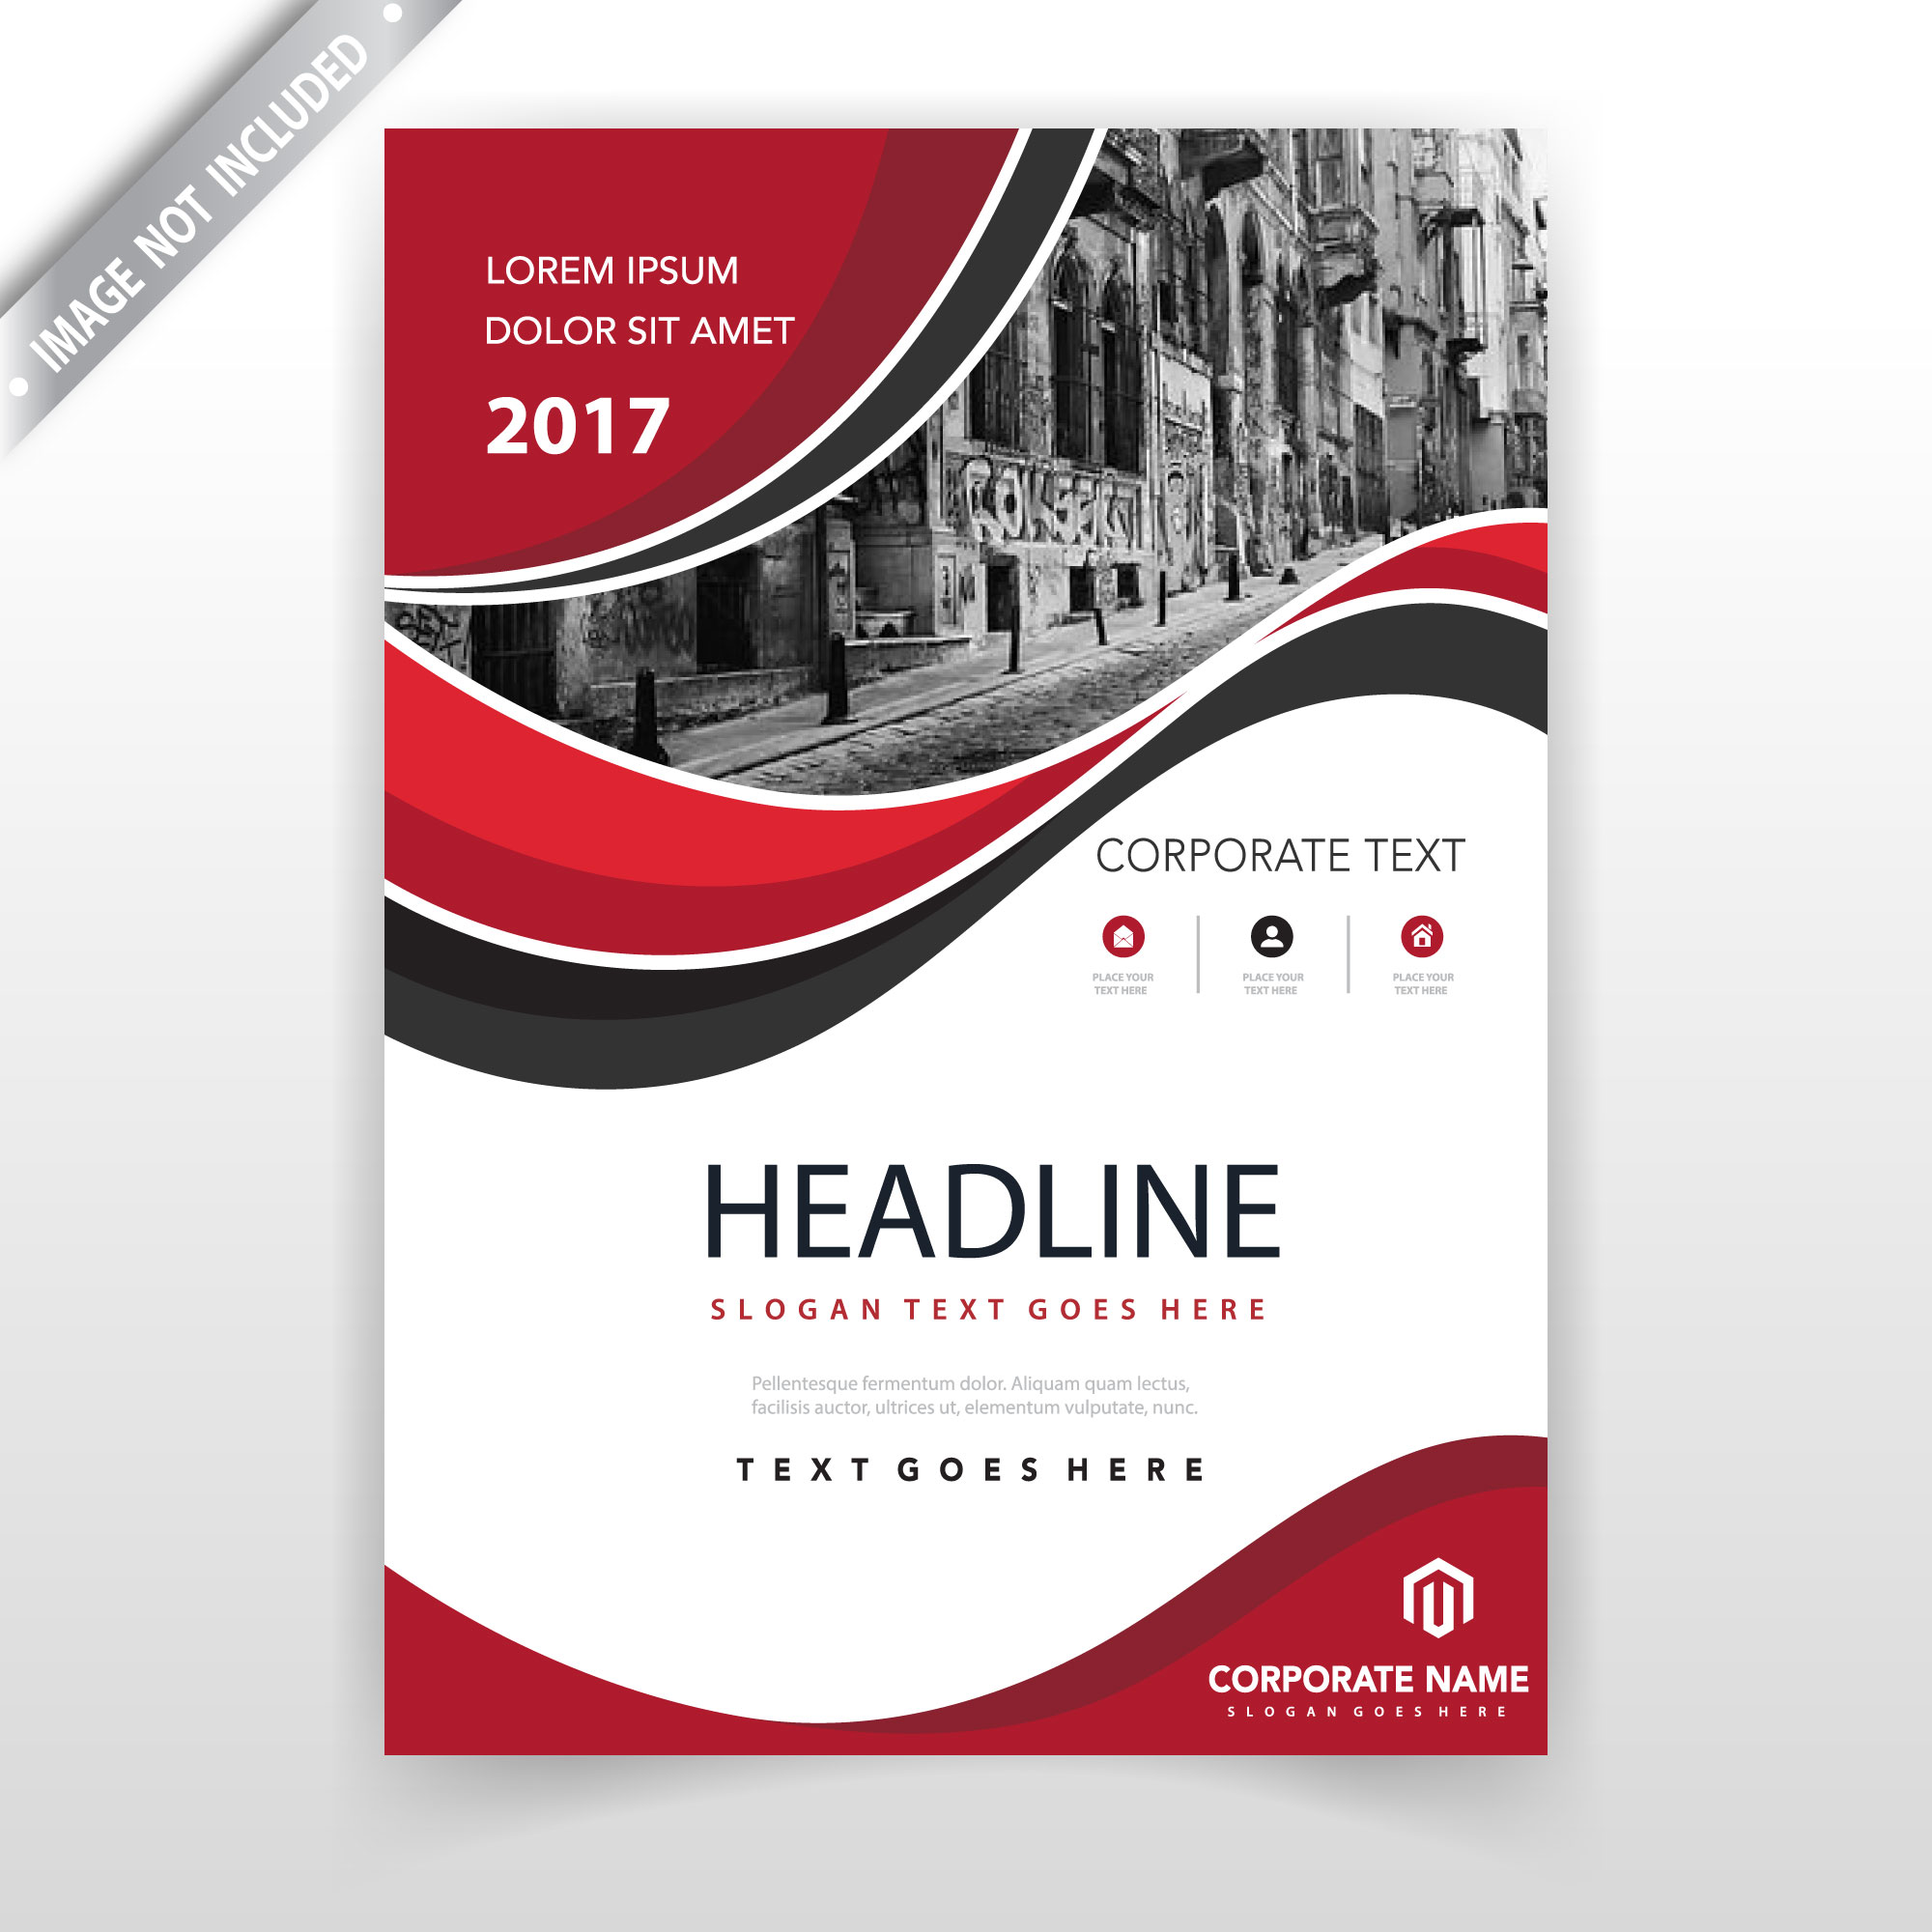 Red wavy leaflet cover design template